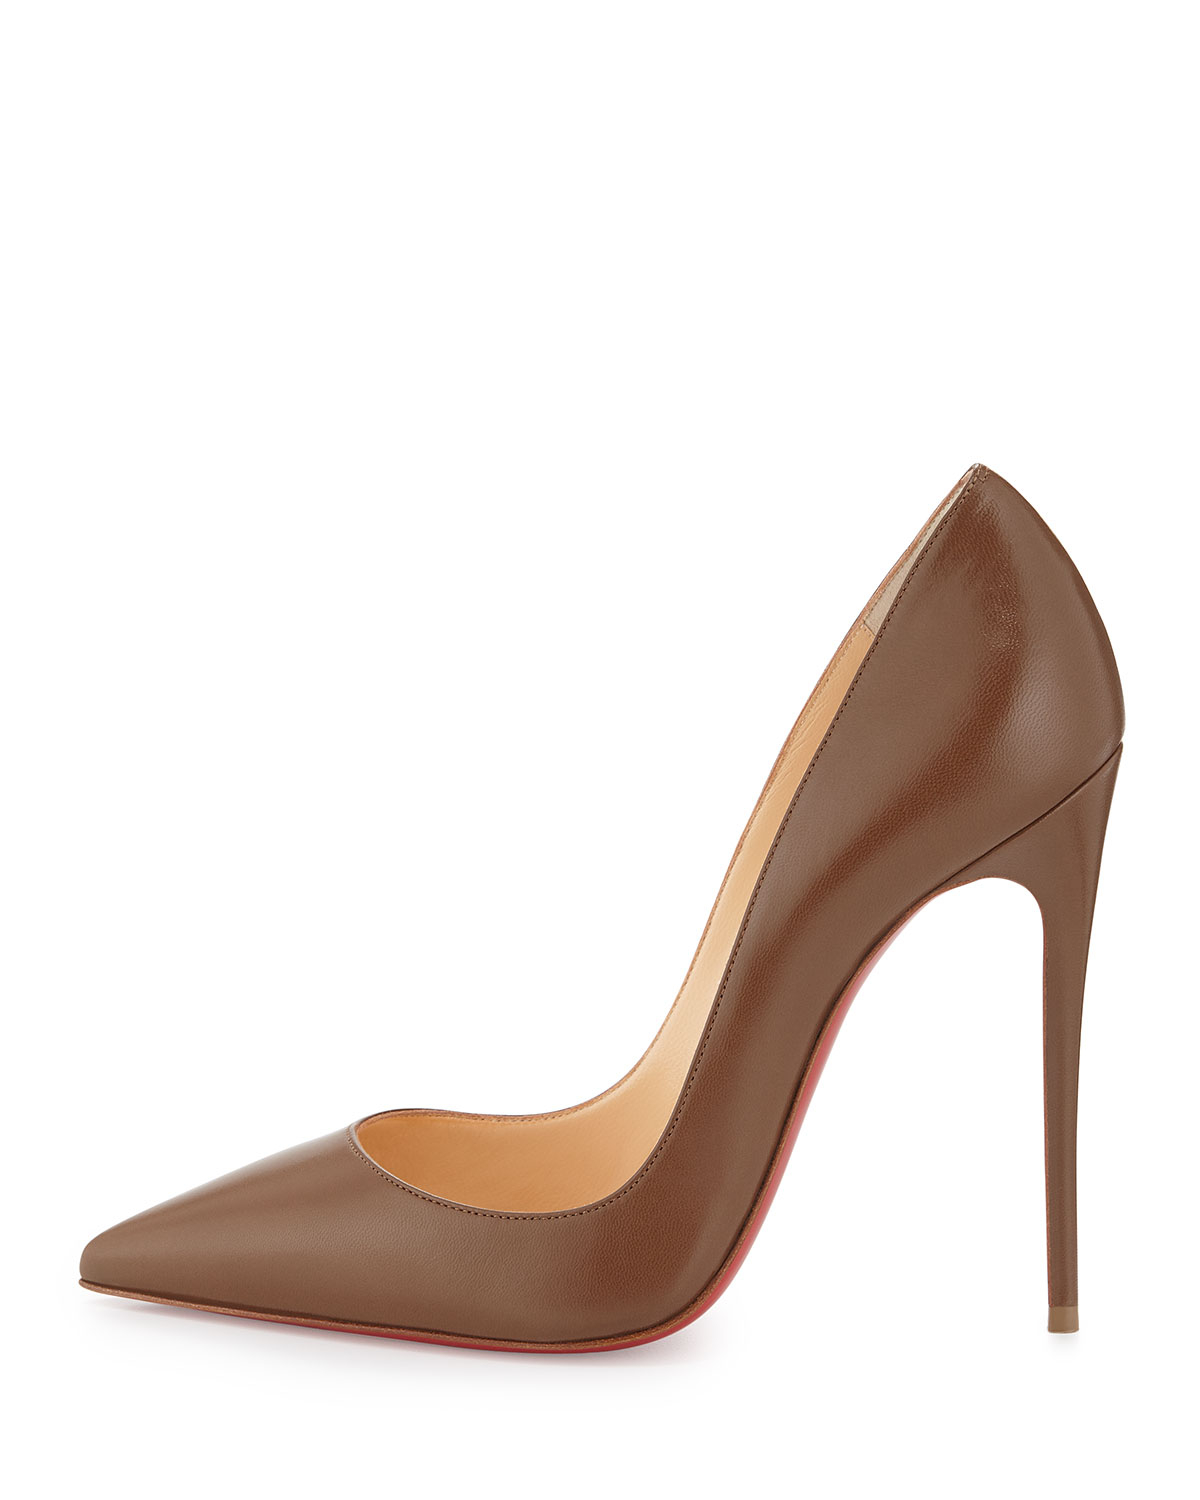 free shipping f4bf8 12e40 Christian Louboutin Brown So Kate Point-toe Red Sole Pump